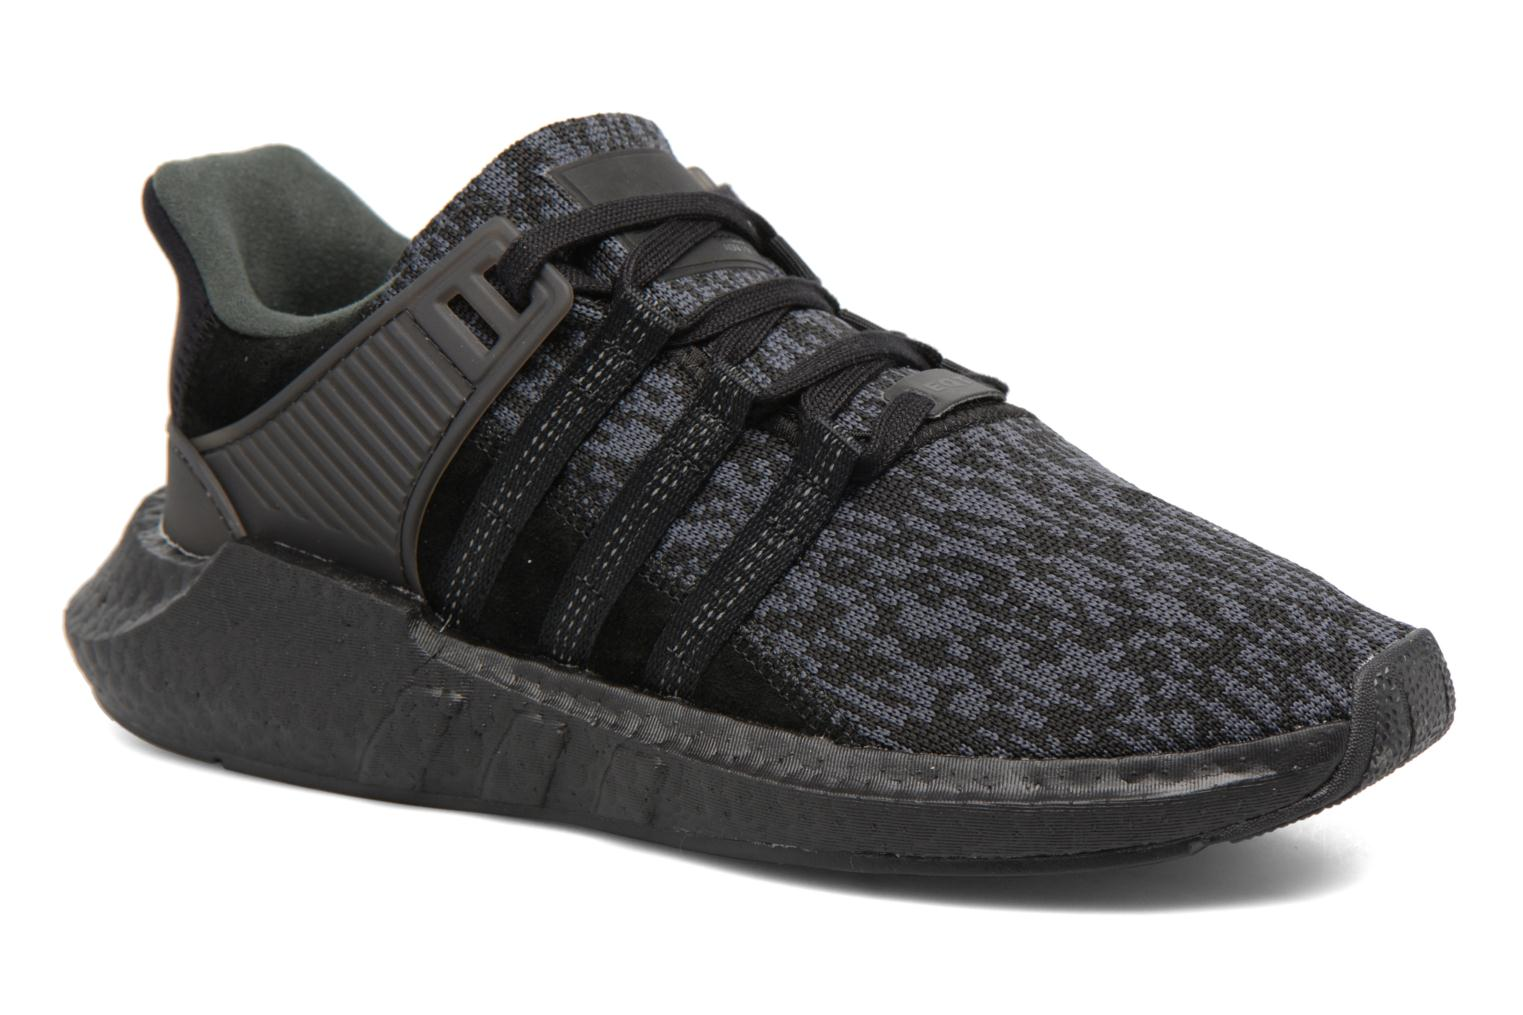 Baskets Adidas Originals Eqt Support 93/17 Noir vue détail/paire